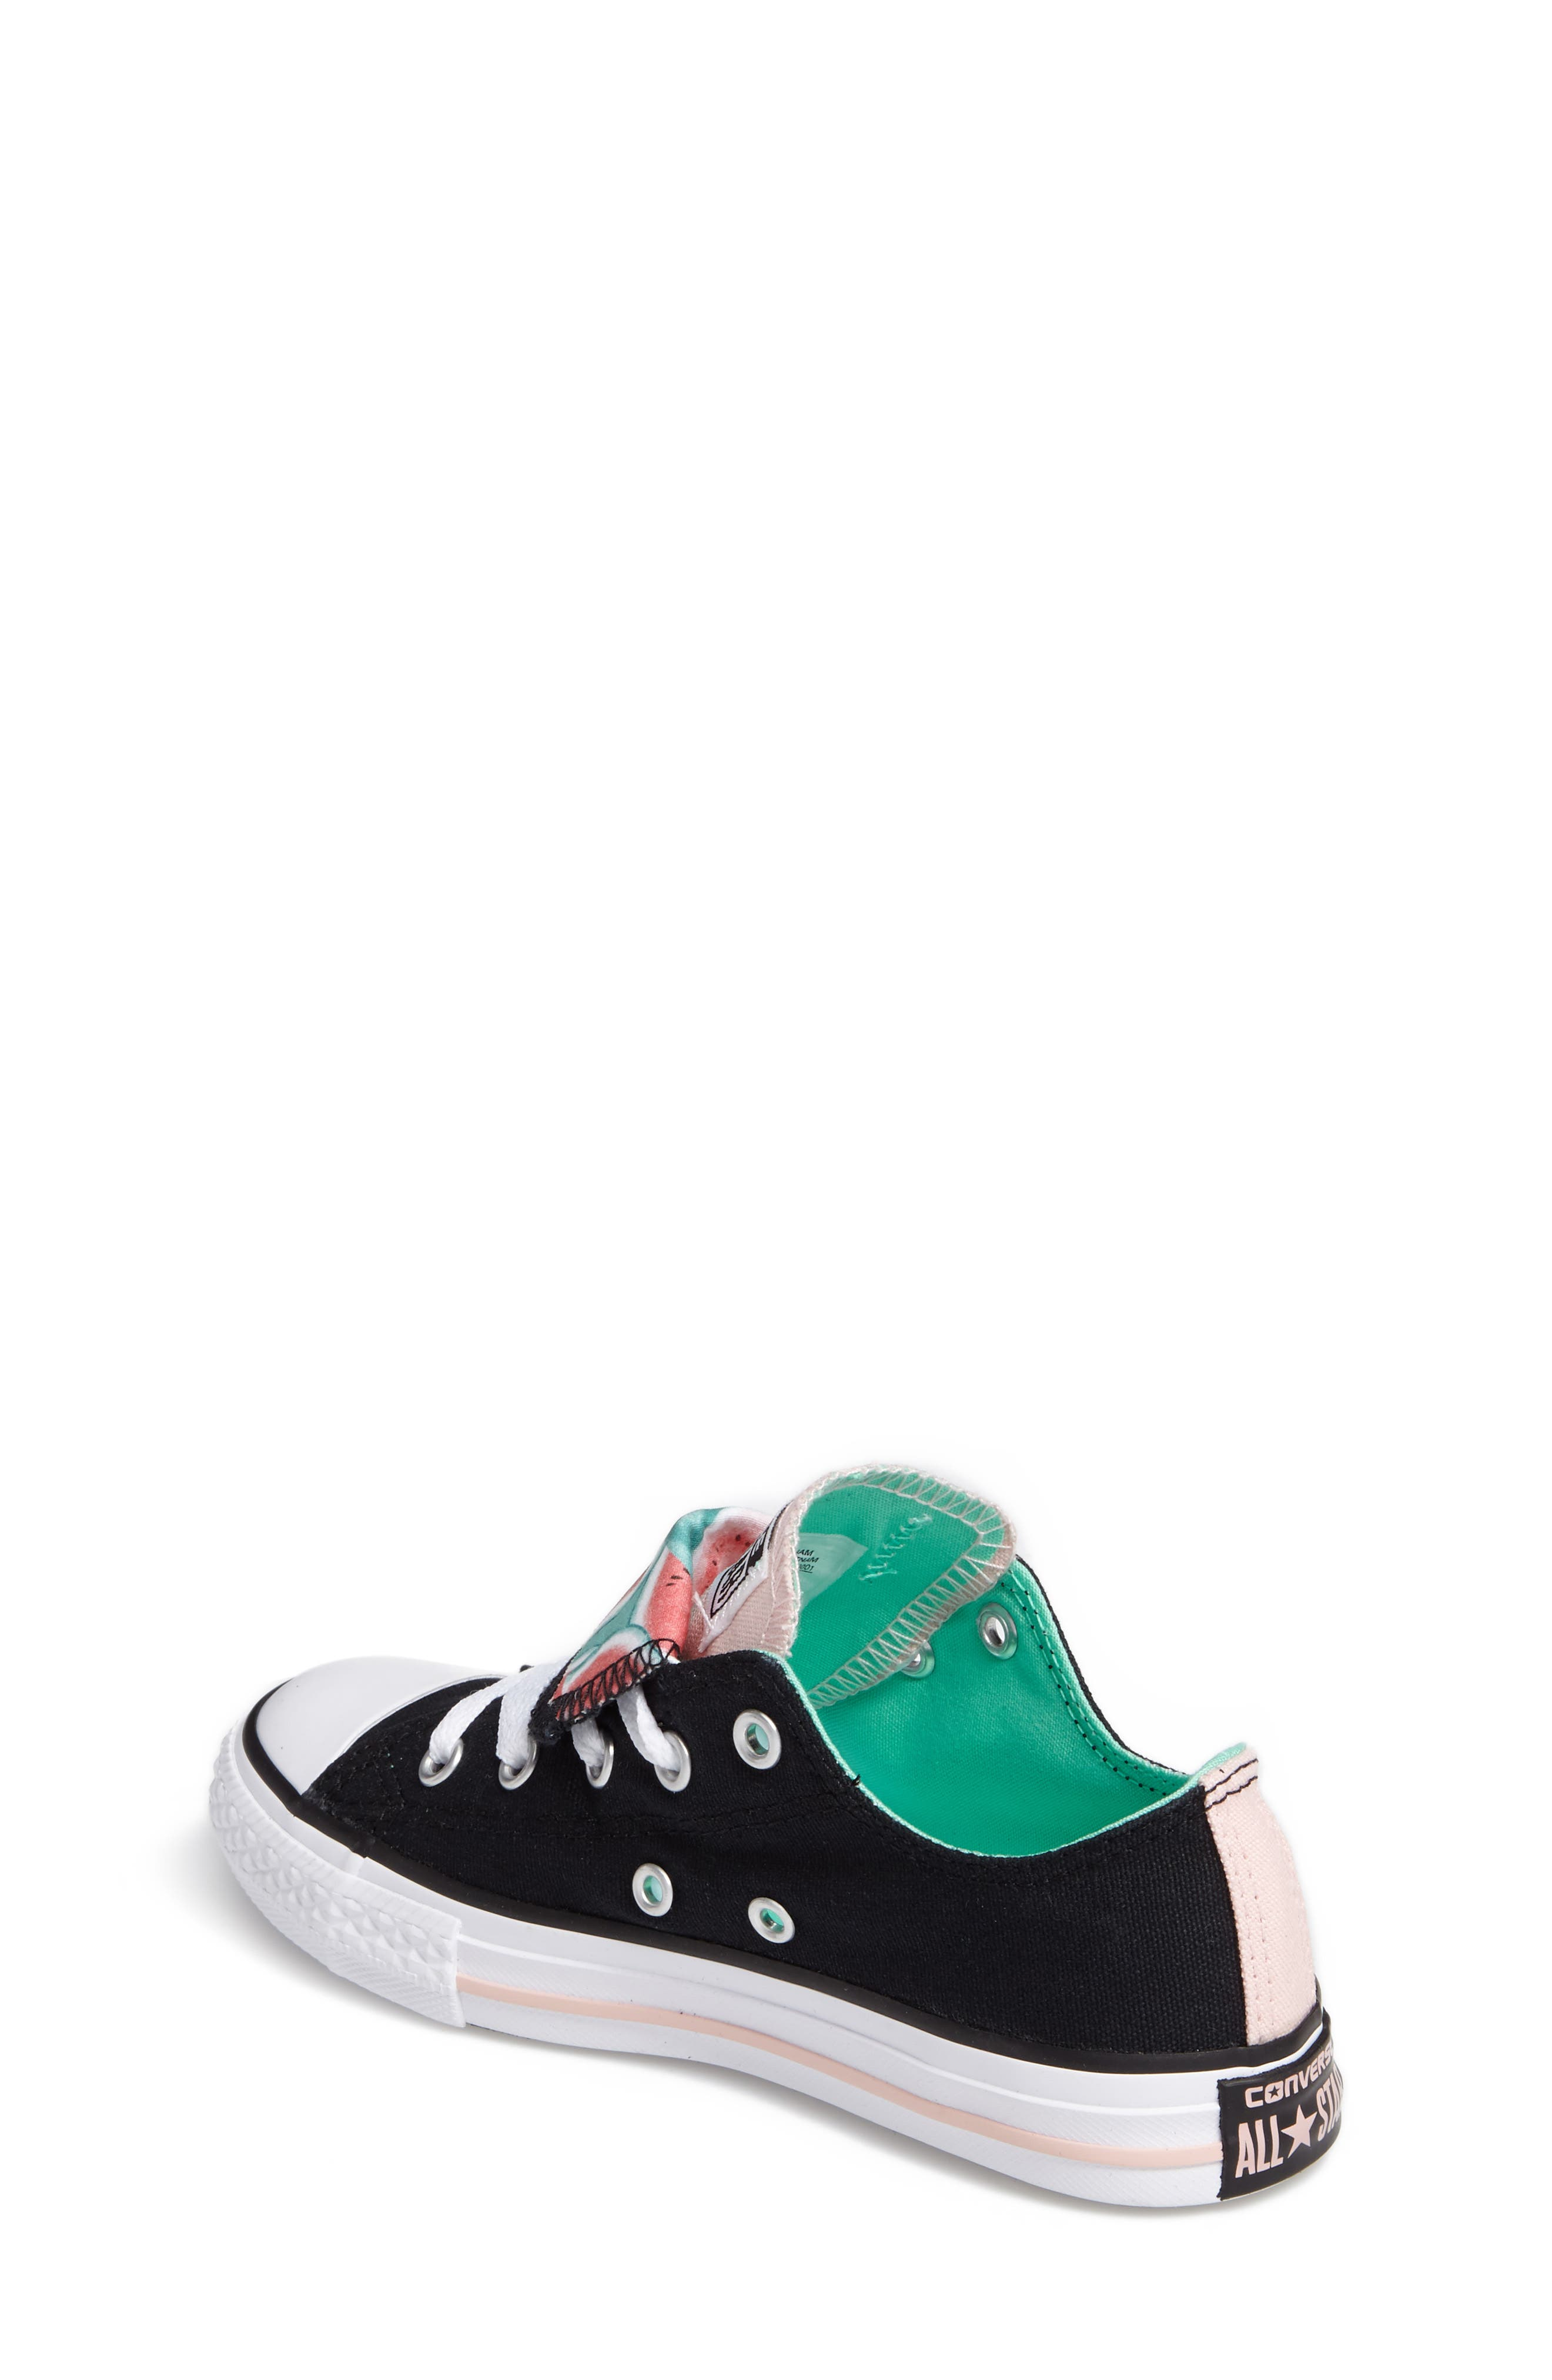 Chuck Taylor<sup>®</sup> All Star<sup>®</sup> Watermelon Print Sneaker,                             Alternate thumbnail 2, color,                             Black